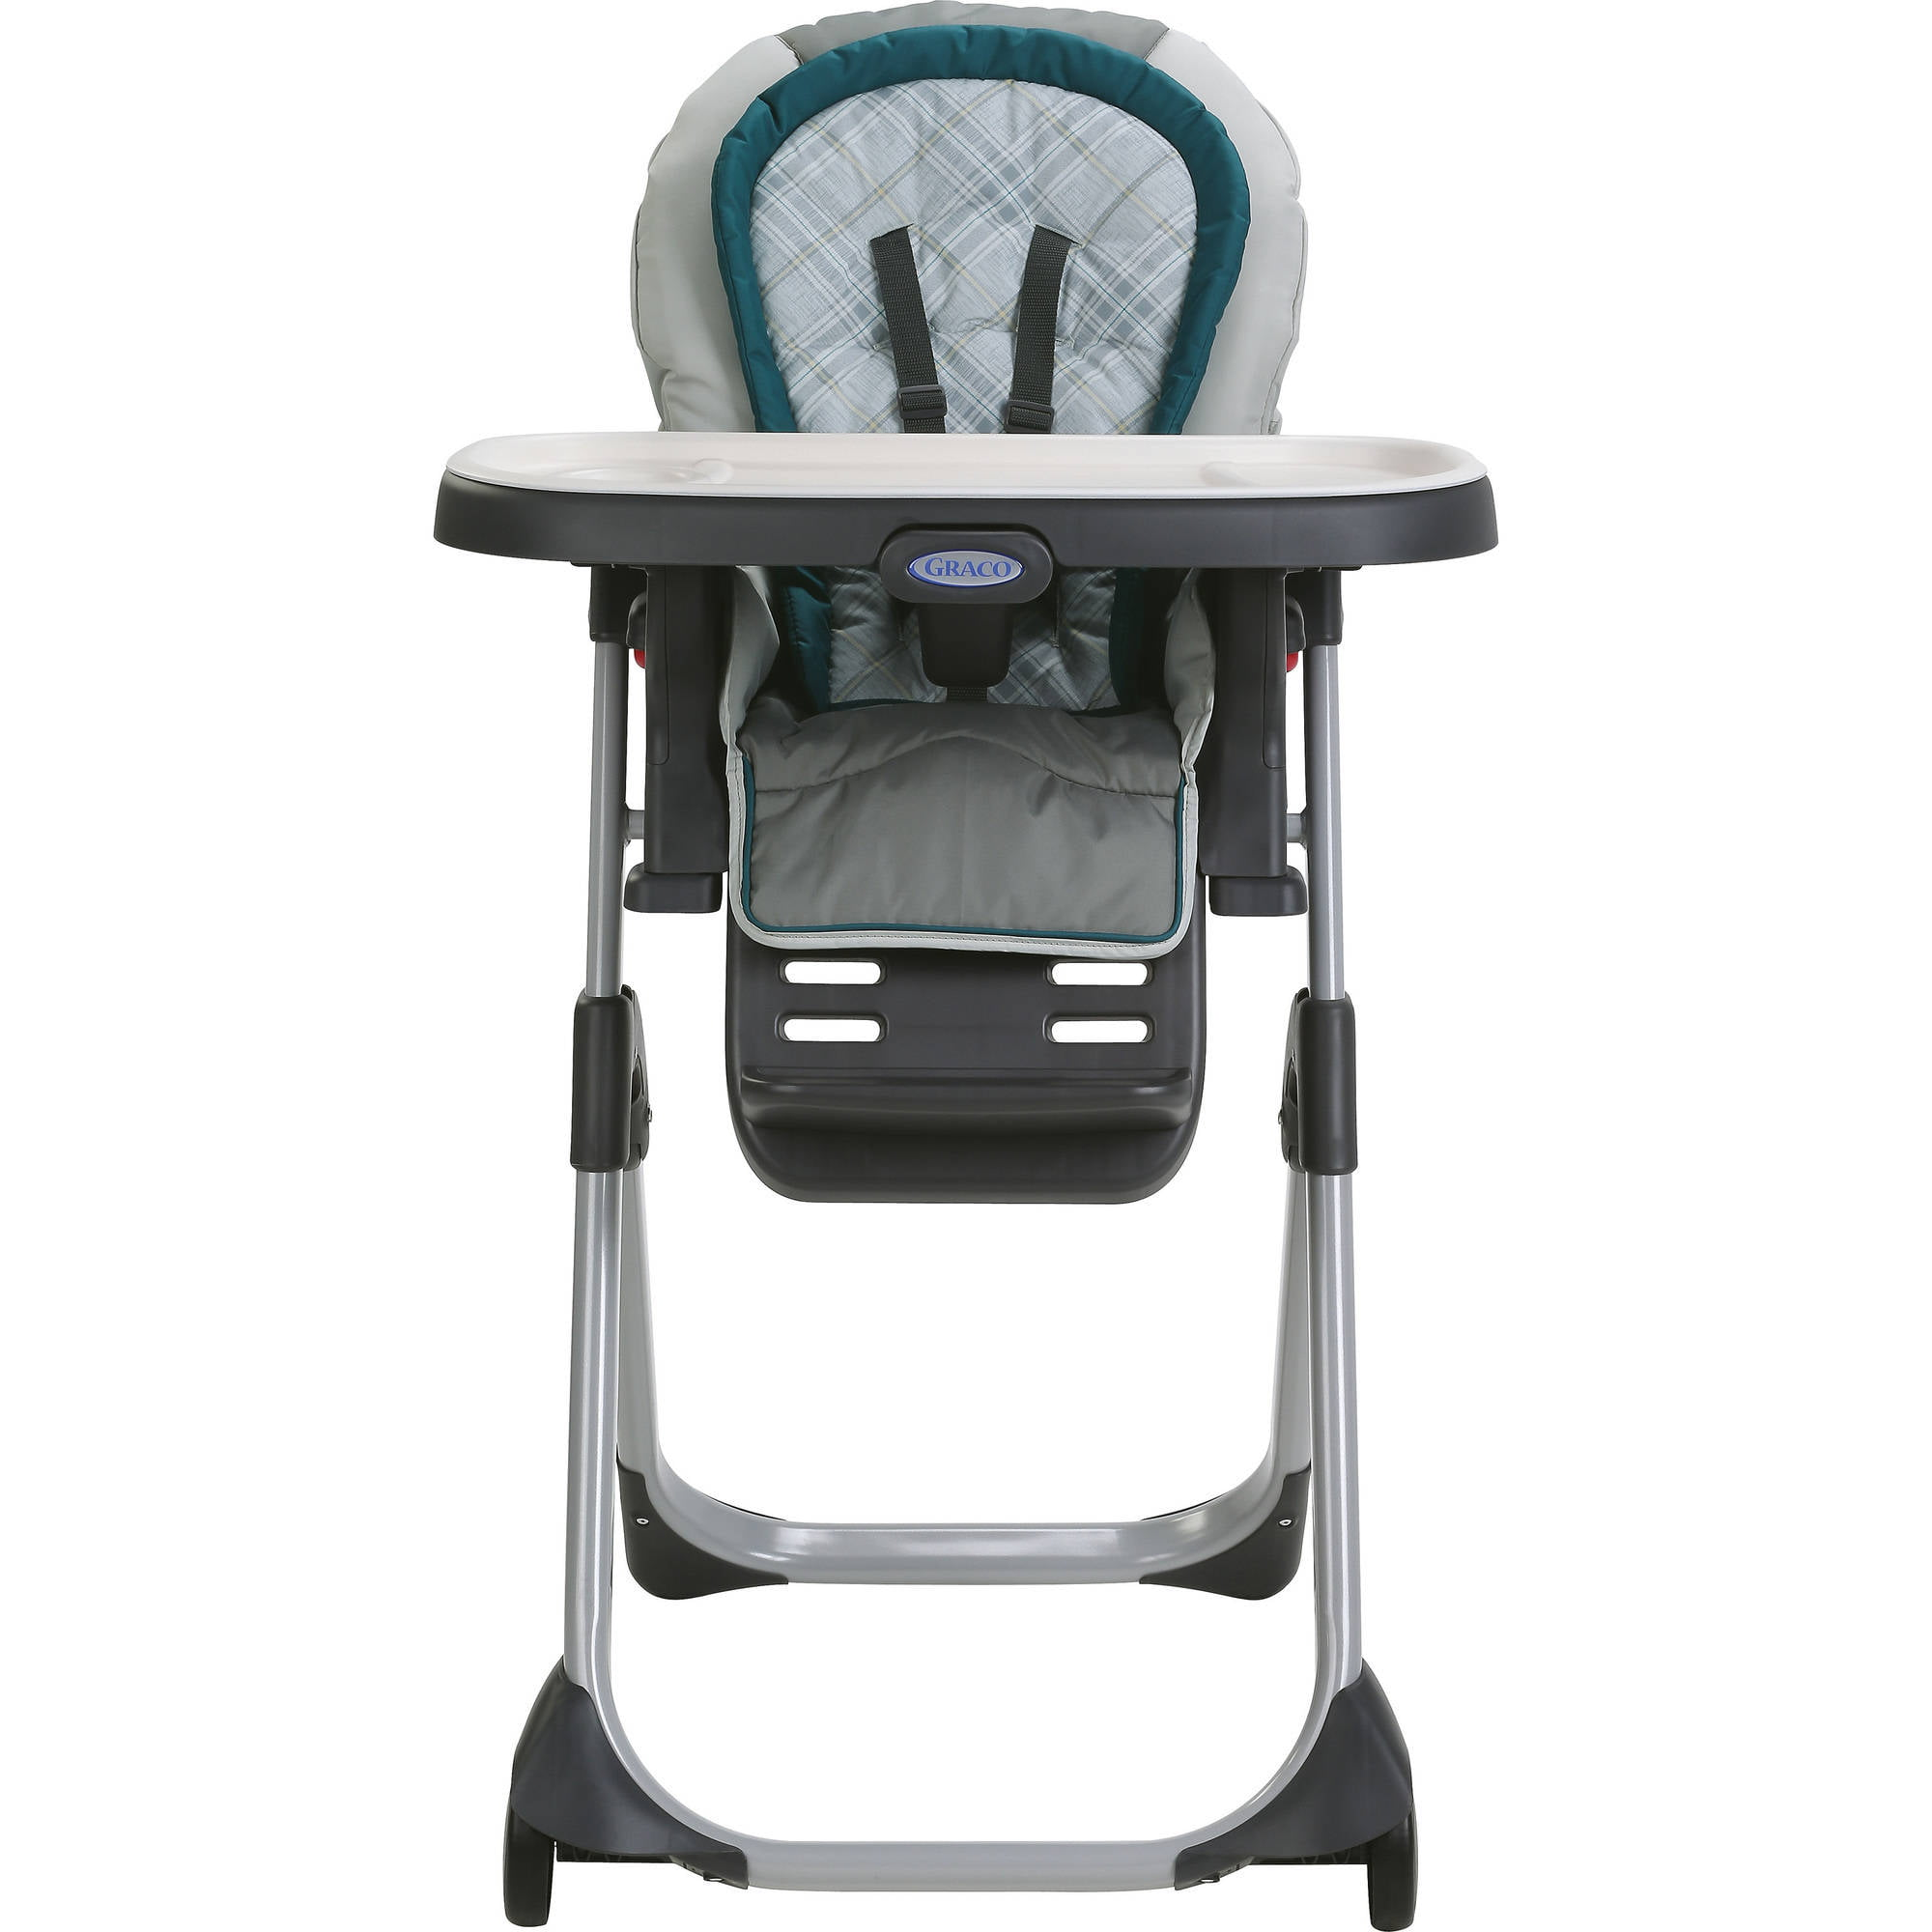 Graco DuoDiner 3 in 1 Baby High Chair Luke Walmart